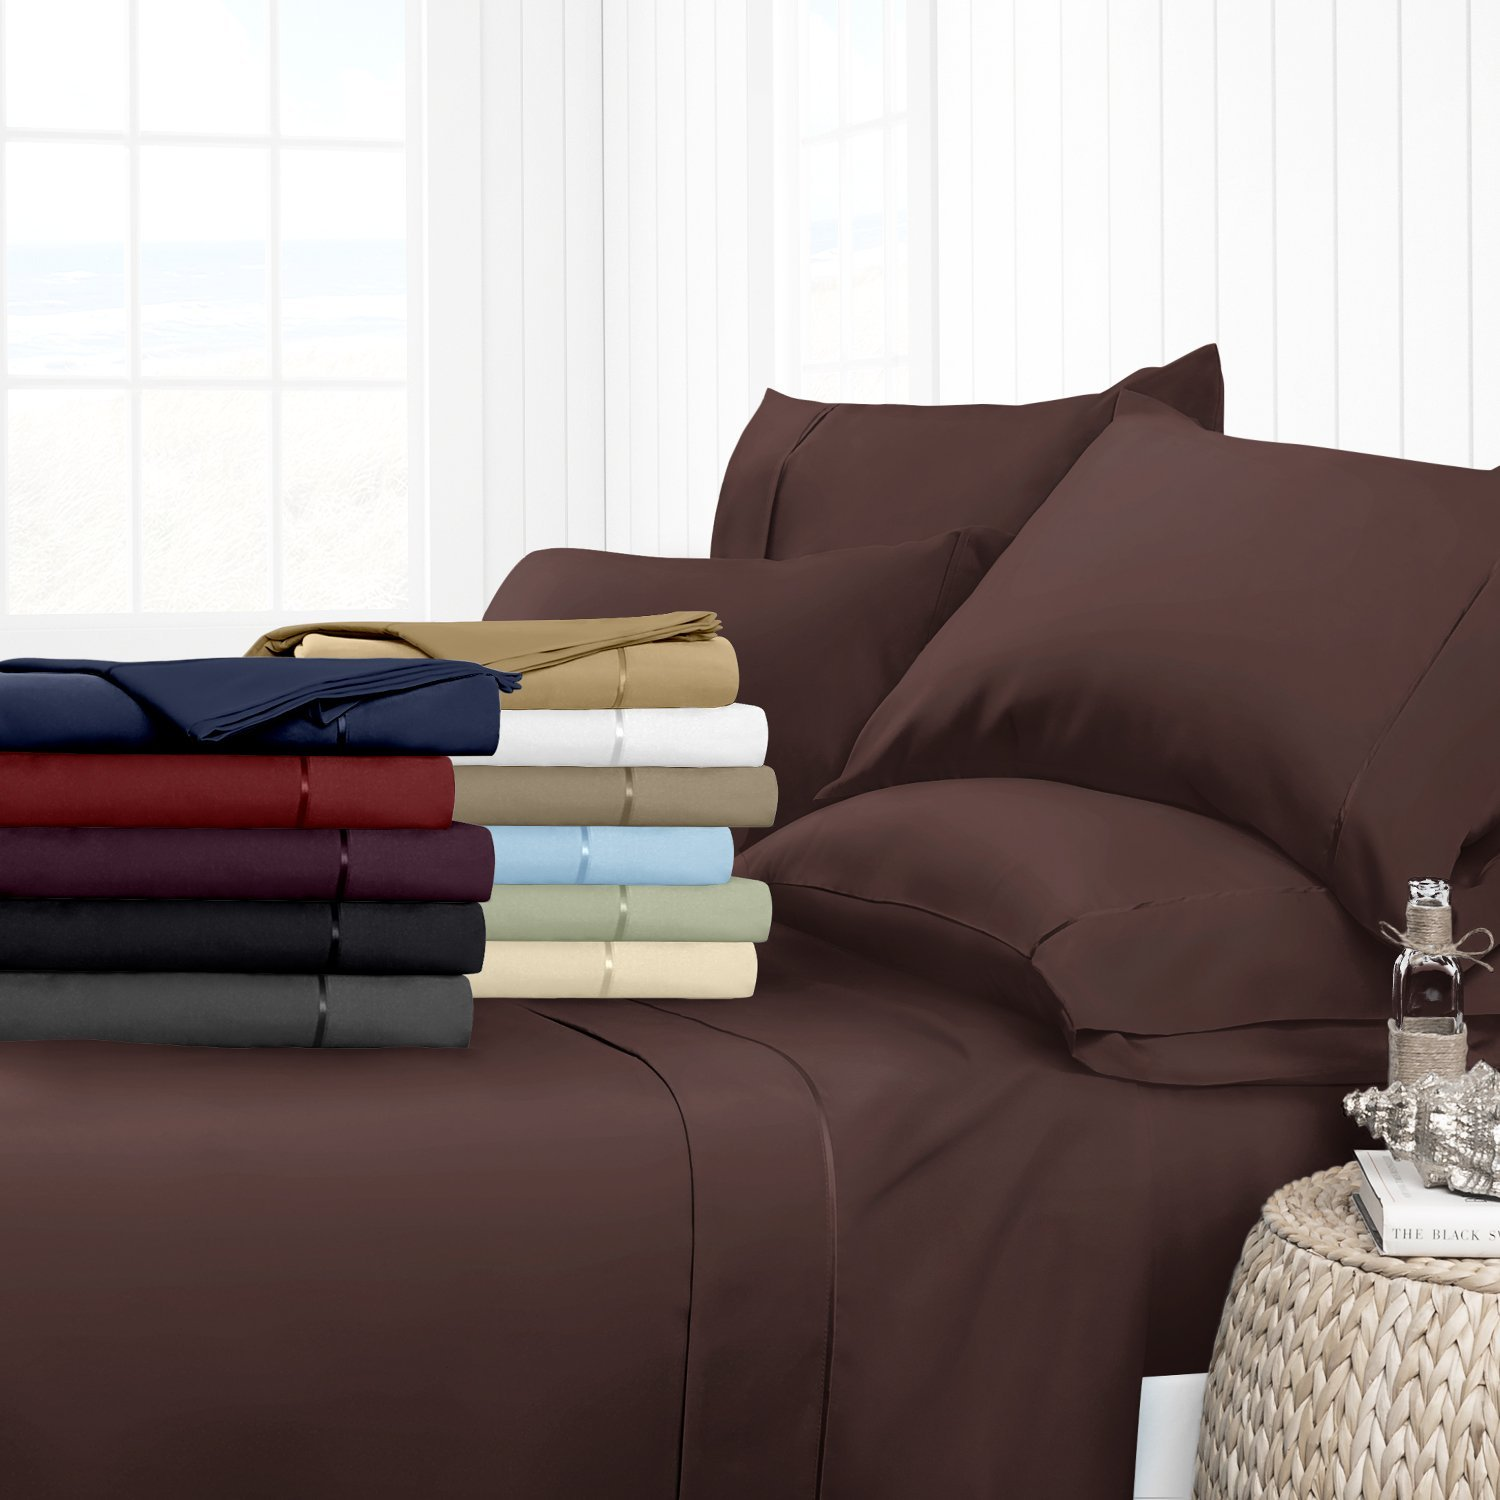 (Twin, Chocolate) Egyptian Luxury 1700 Hotel Collection 4-Piece Bed Sheet Set Deep Pockets, Wrinkle and Fade Resistant, Hypoallergenic Sheet and Pillow Case Set Twin, Chocolate B076VQ8942 ツイン|チョコレート チョコレート ツイン